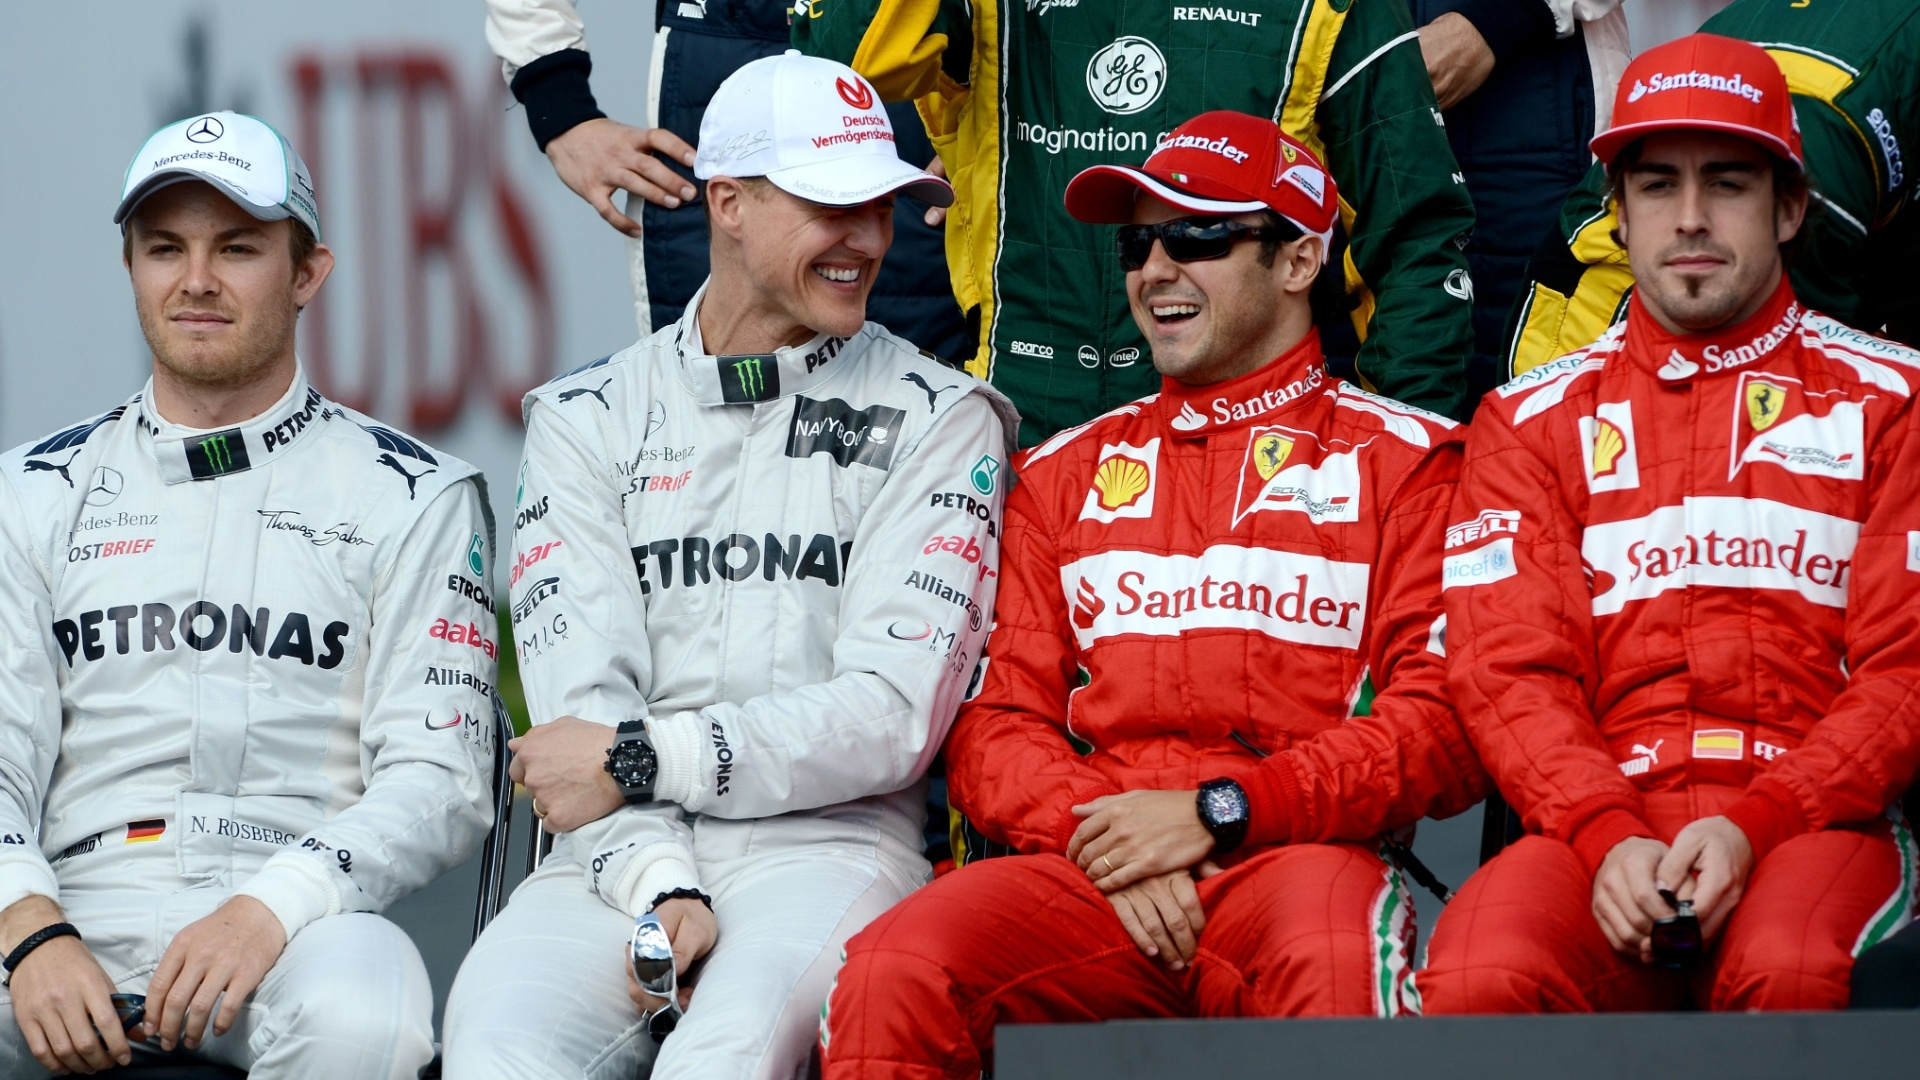 Michael Schumacher e Felipe Massa conversam de forma descontrada enquanto se preparam para a foto oficial dos pilotos